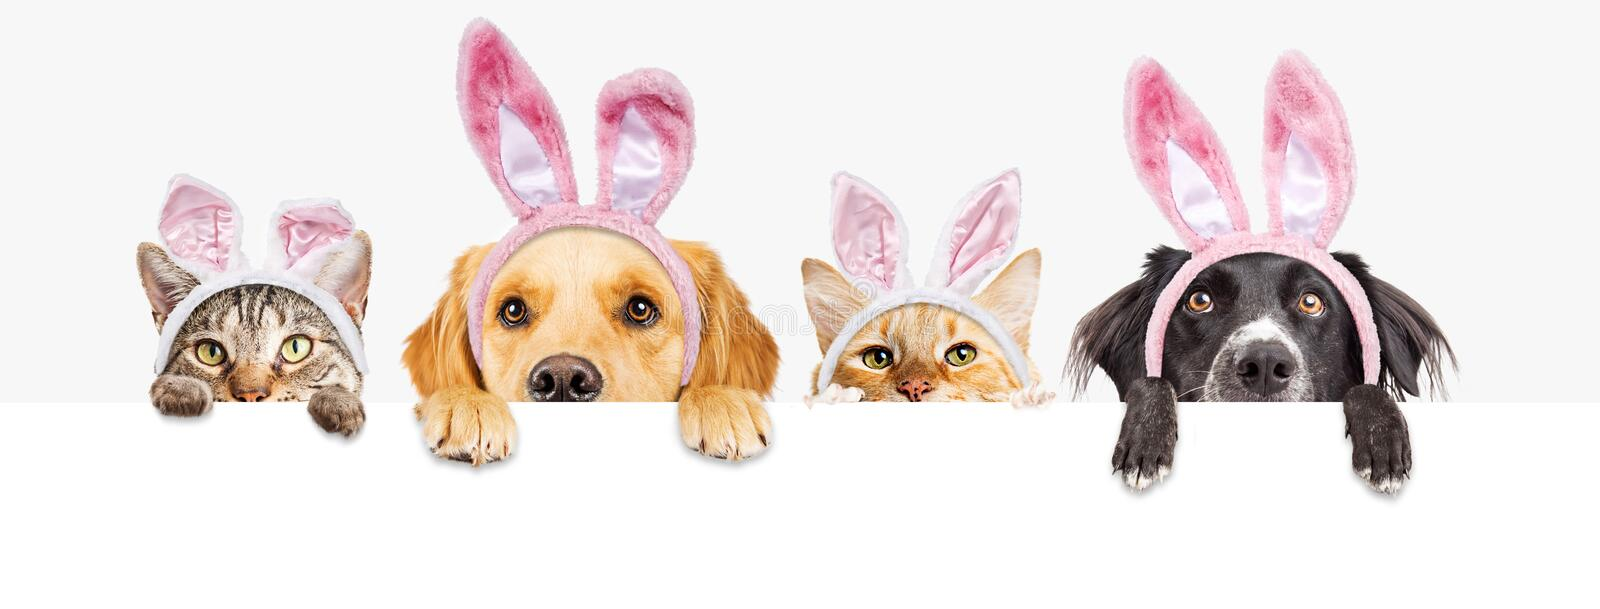 Easter Dogs and Cats Over Web Banner royalty free stock photo